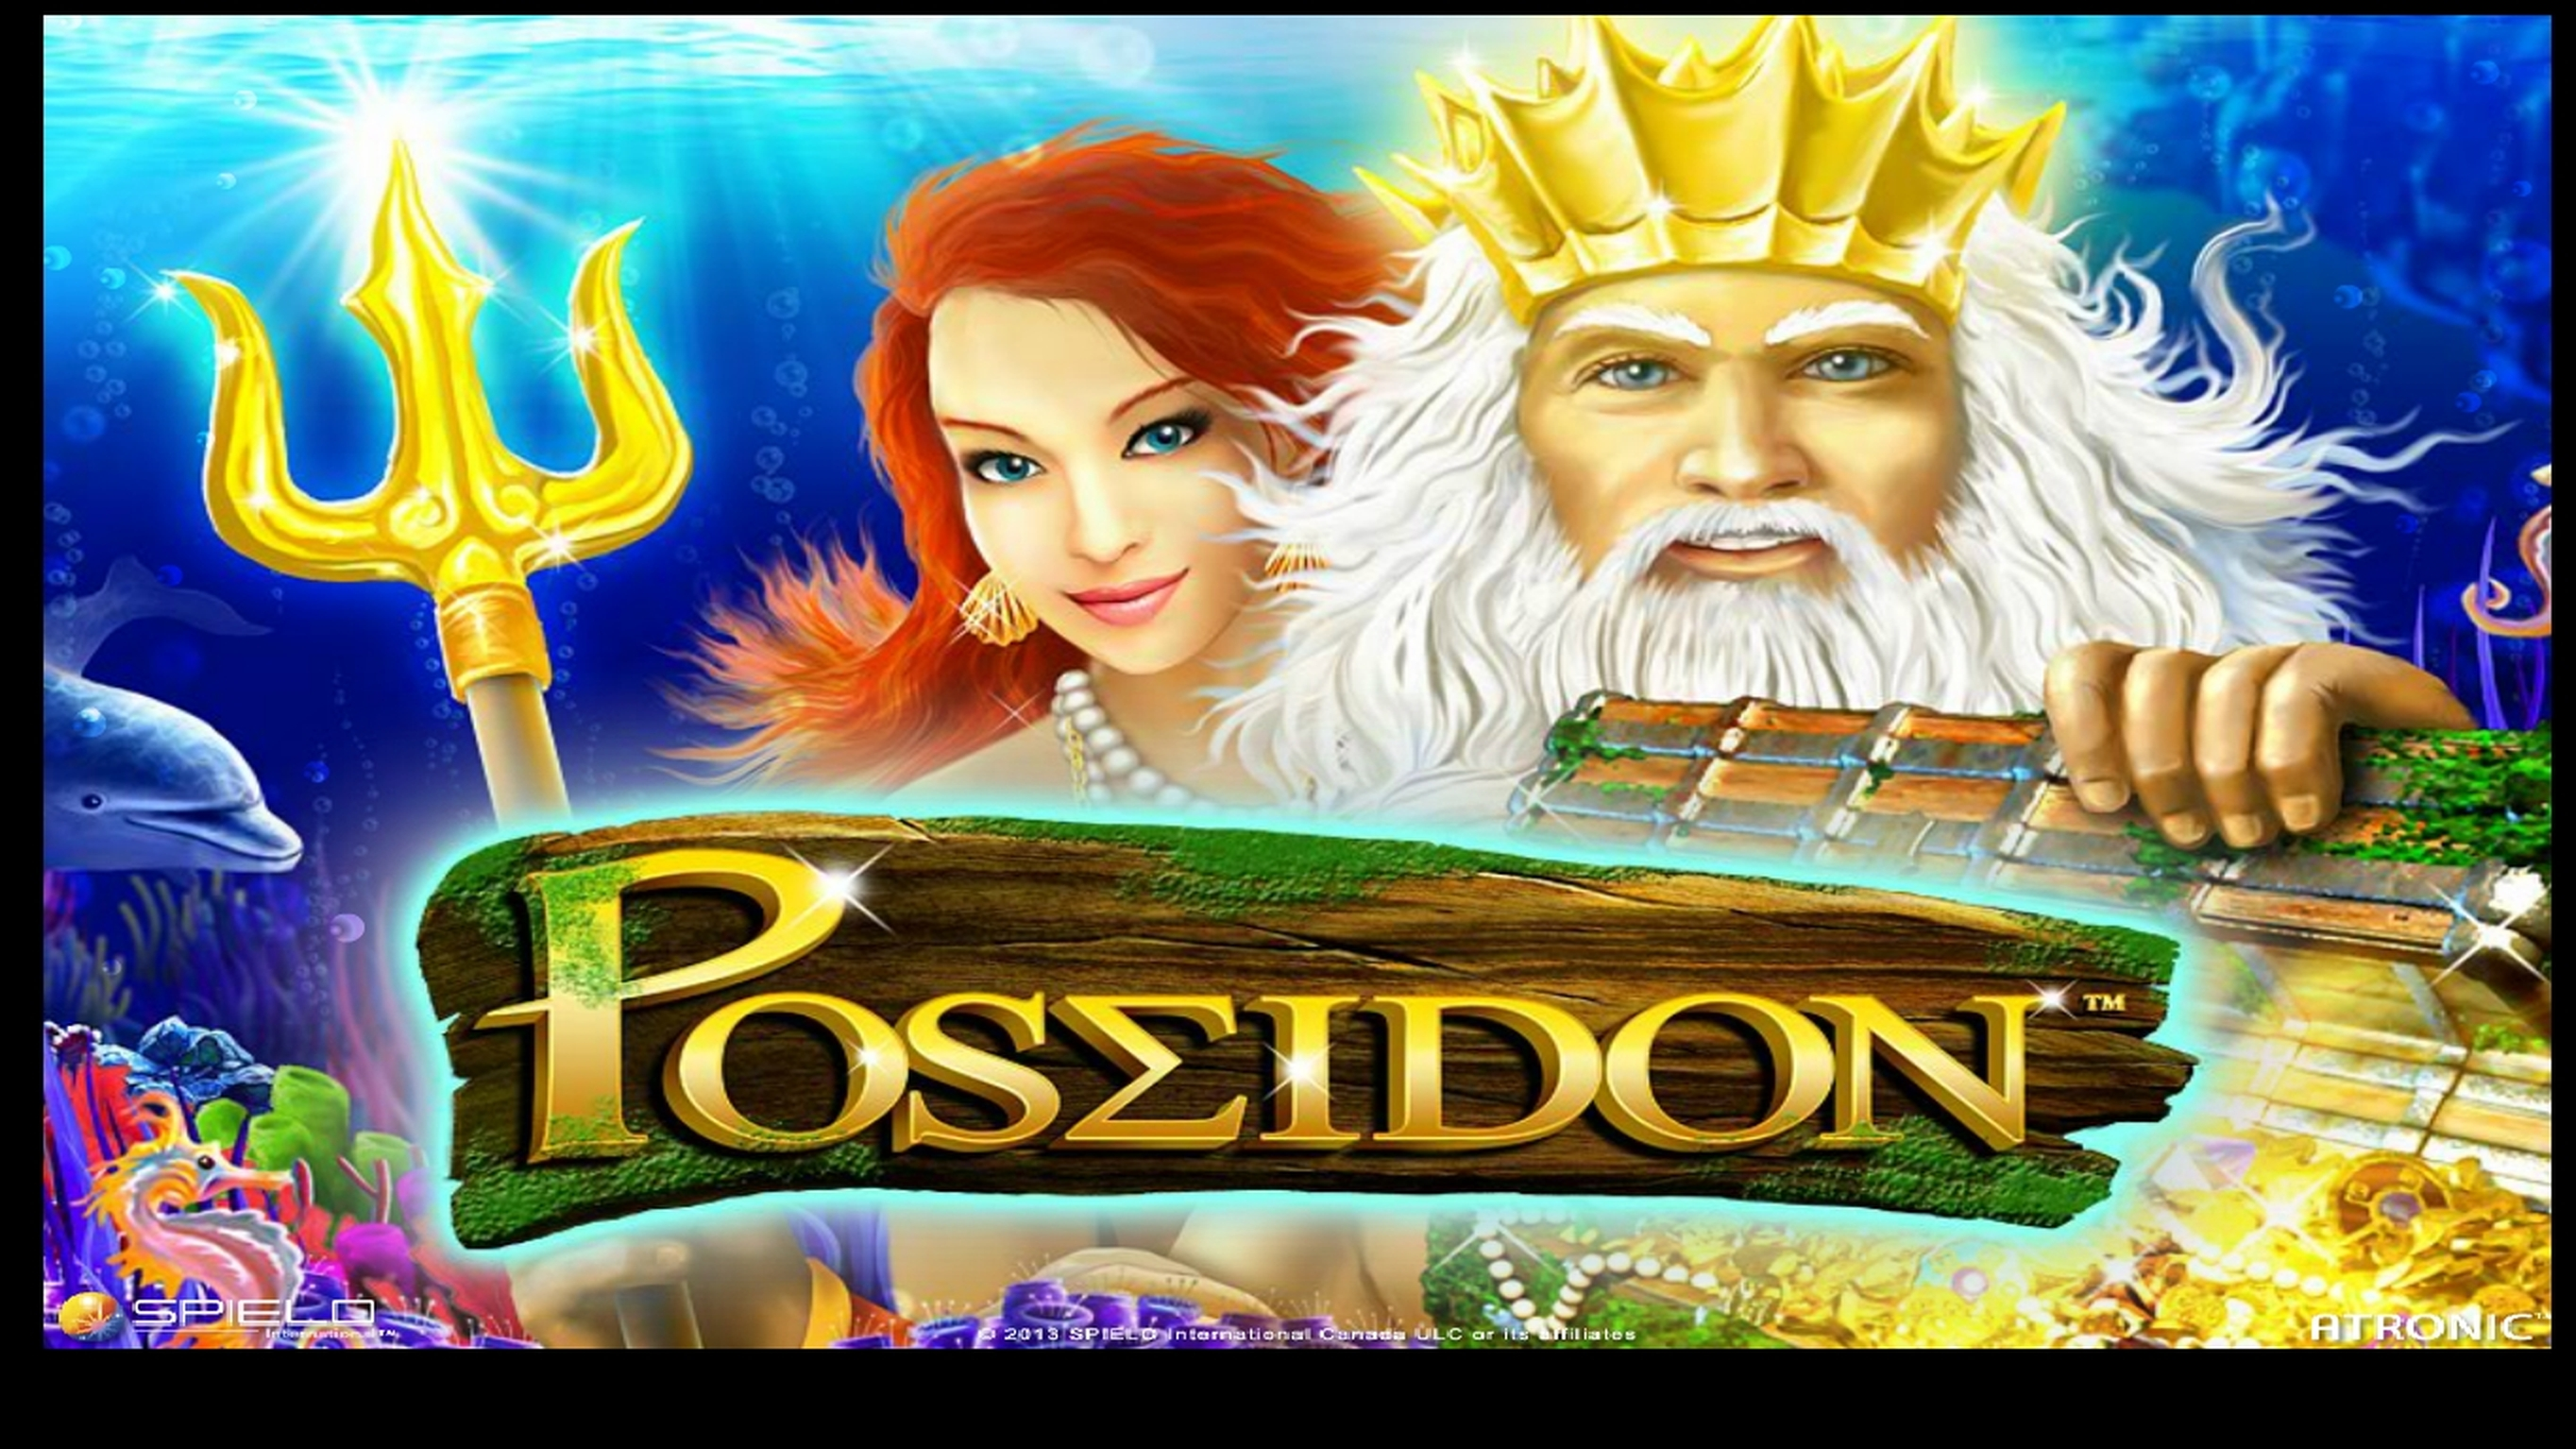 Play Poseidon (CQ9Gaming) Free Casino Slot Game by CQ9Gaming